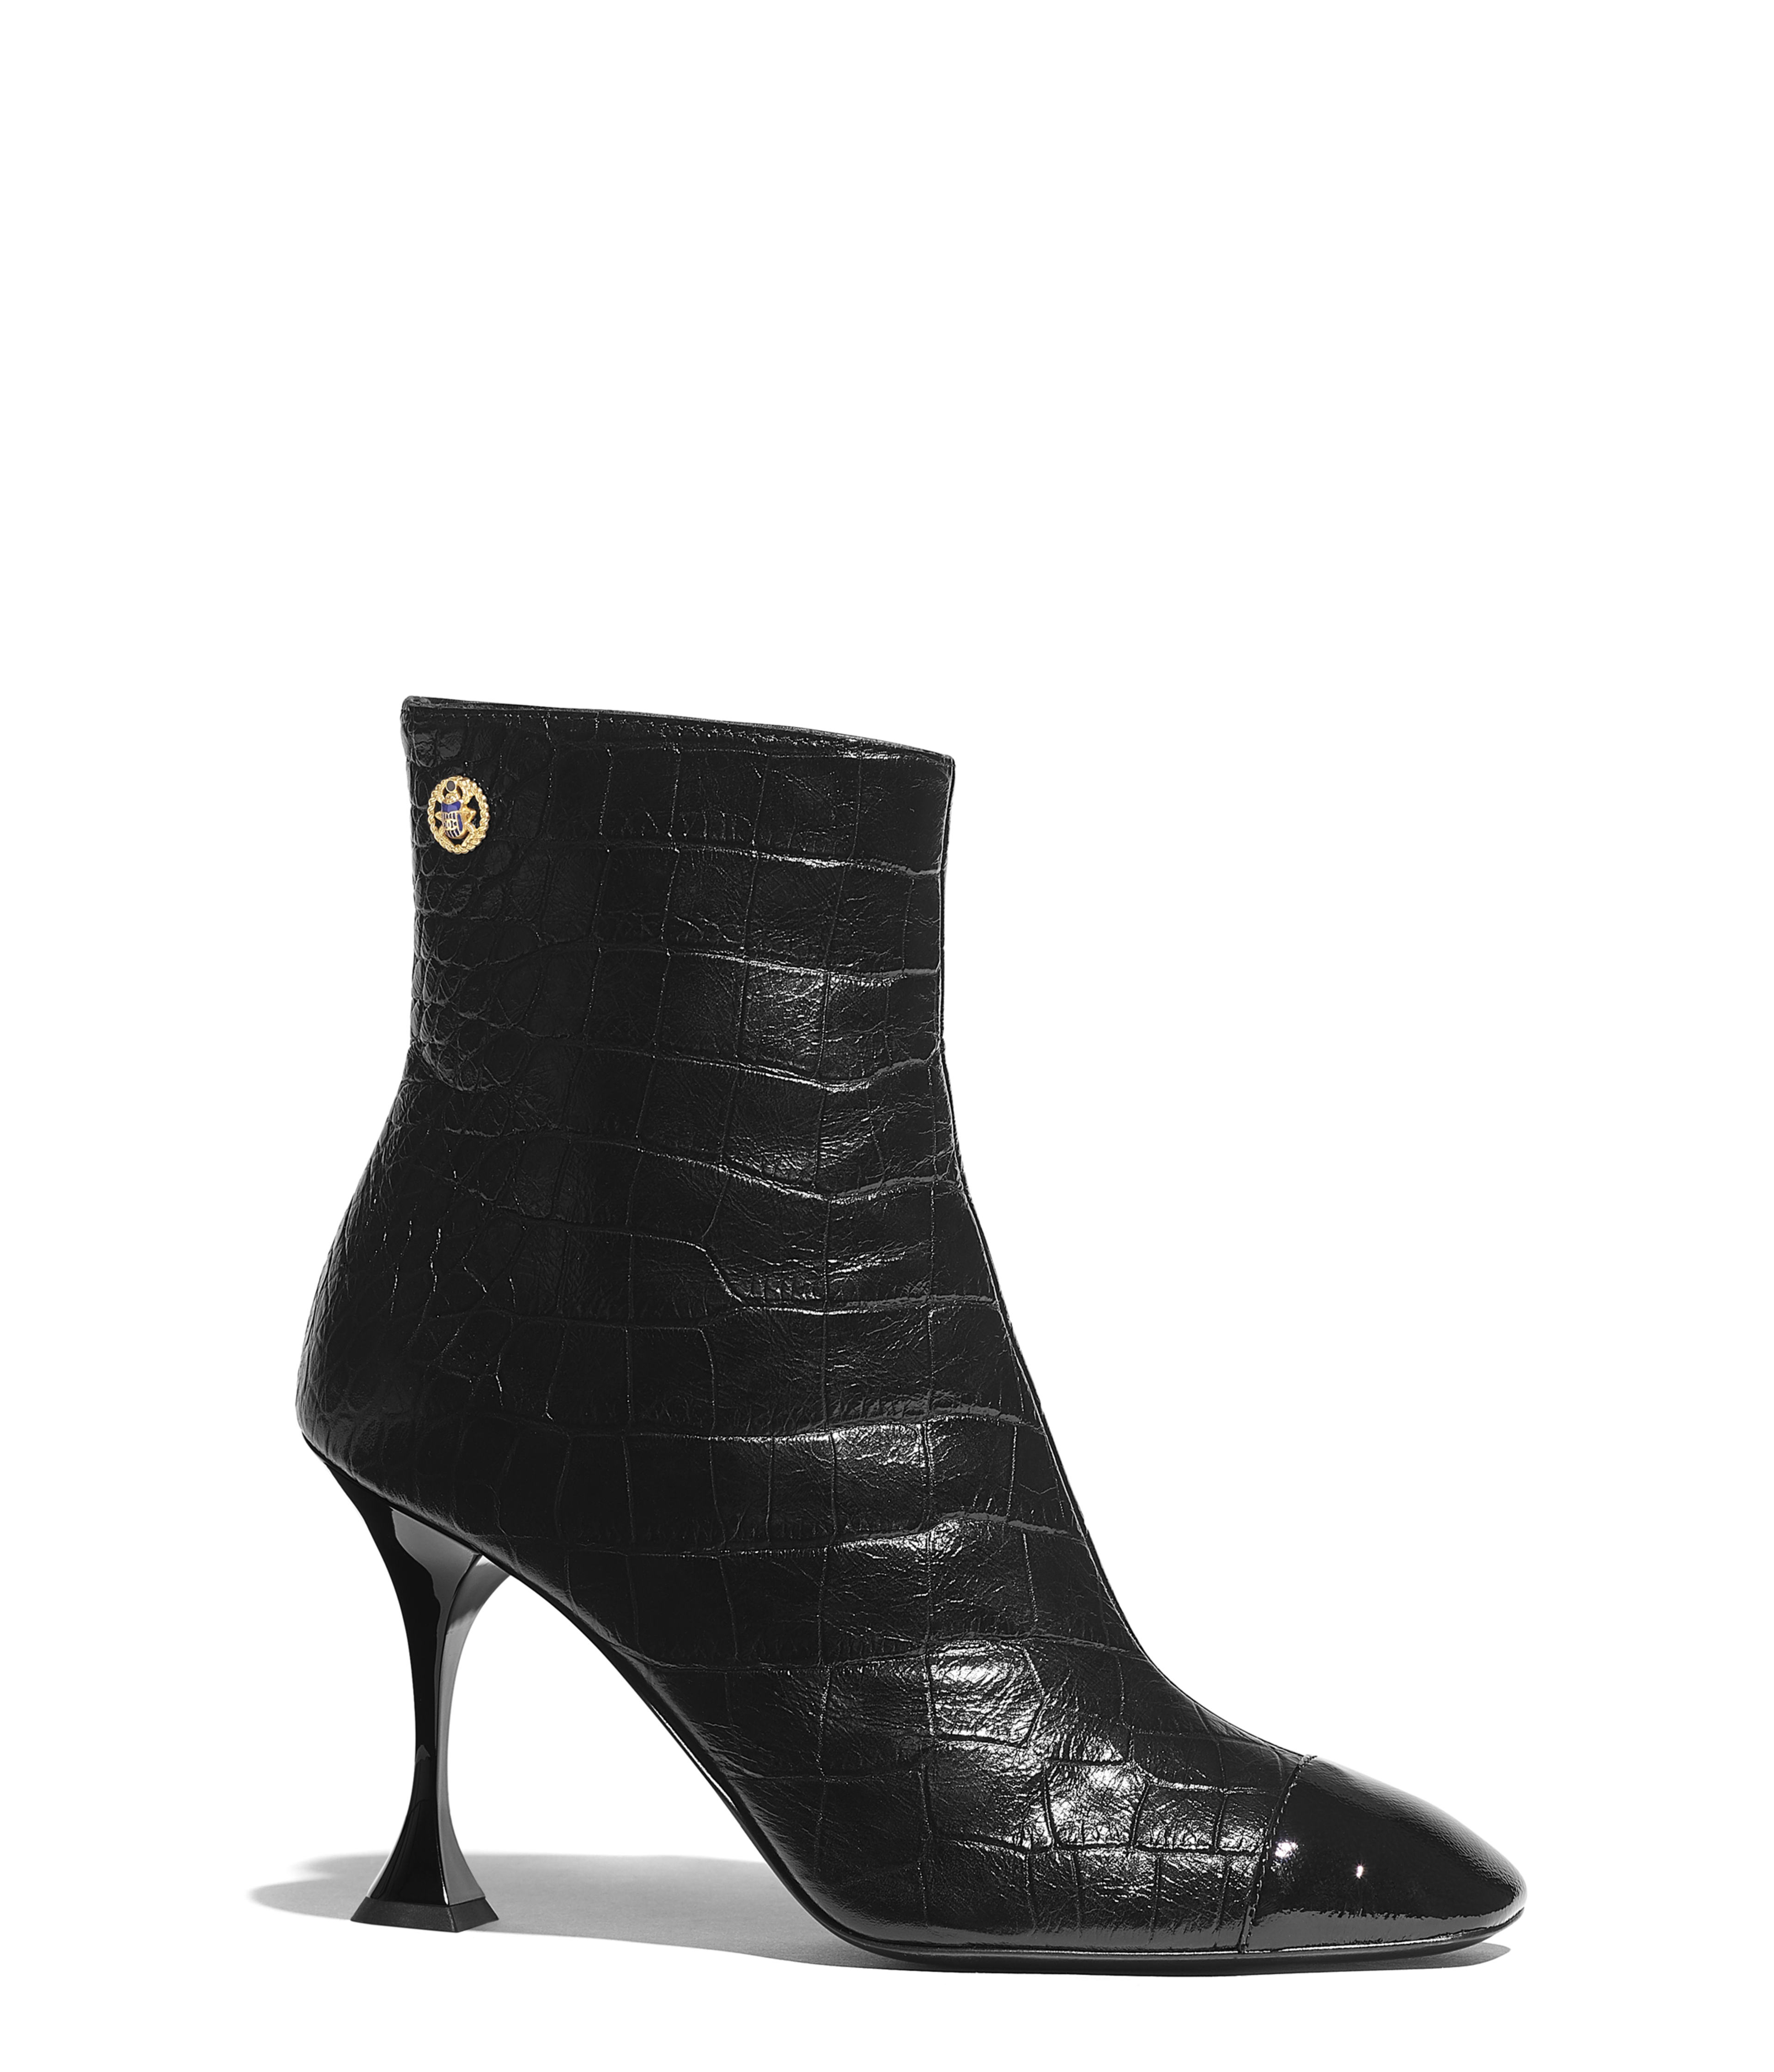 24e0f4807 Ankle Boots Embossed Matte Calfskin & Patent Crumpled Lambskin, Black Ref.  G34903Y5337794305